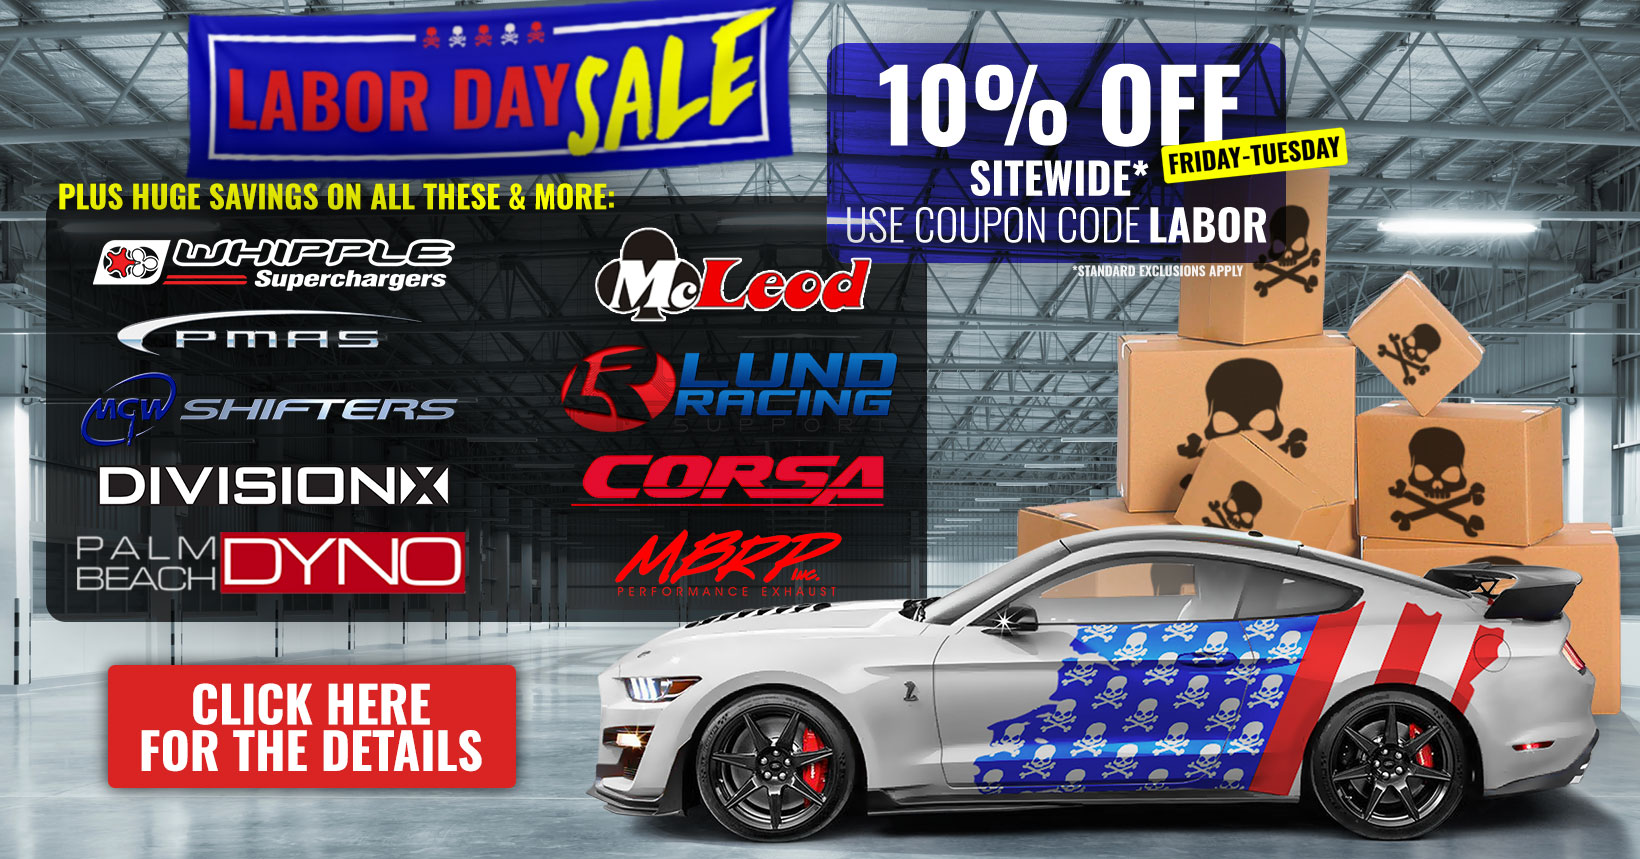 Mustang Parts | Buy Ford Mustang Performance Parts